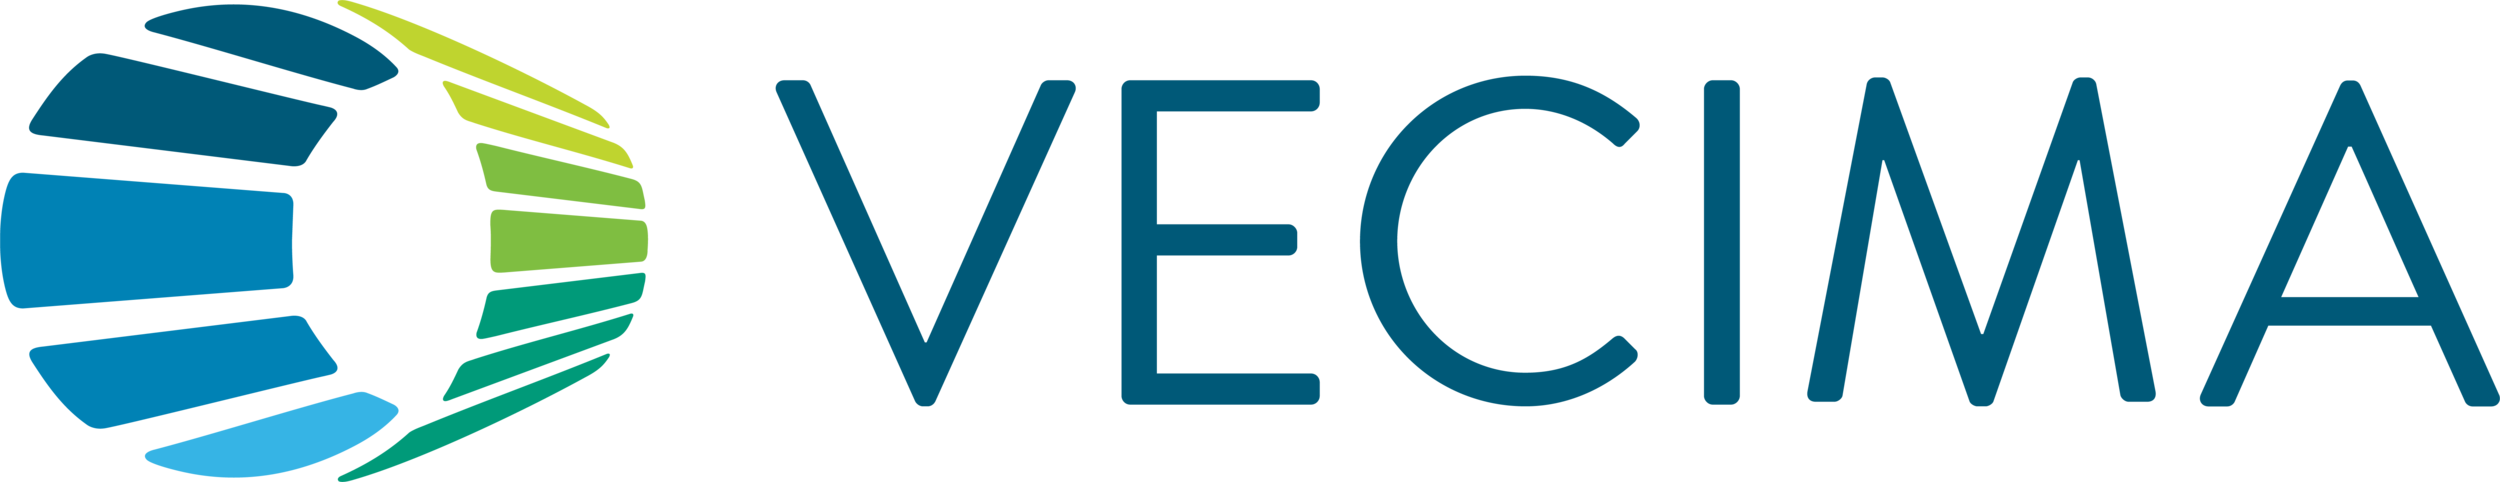 vecima logo-final.png